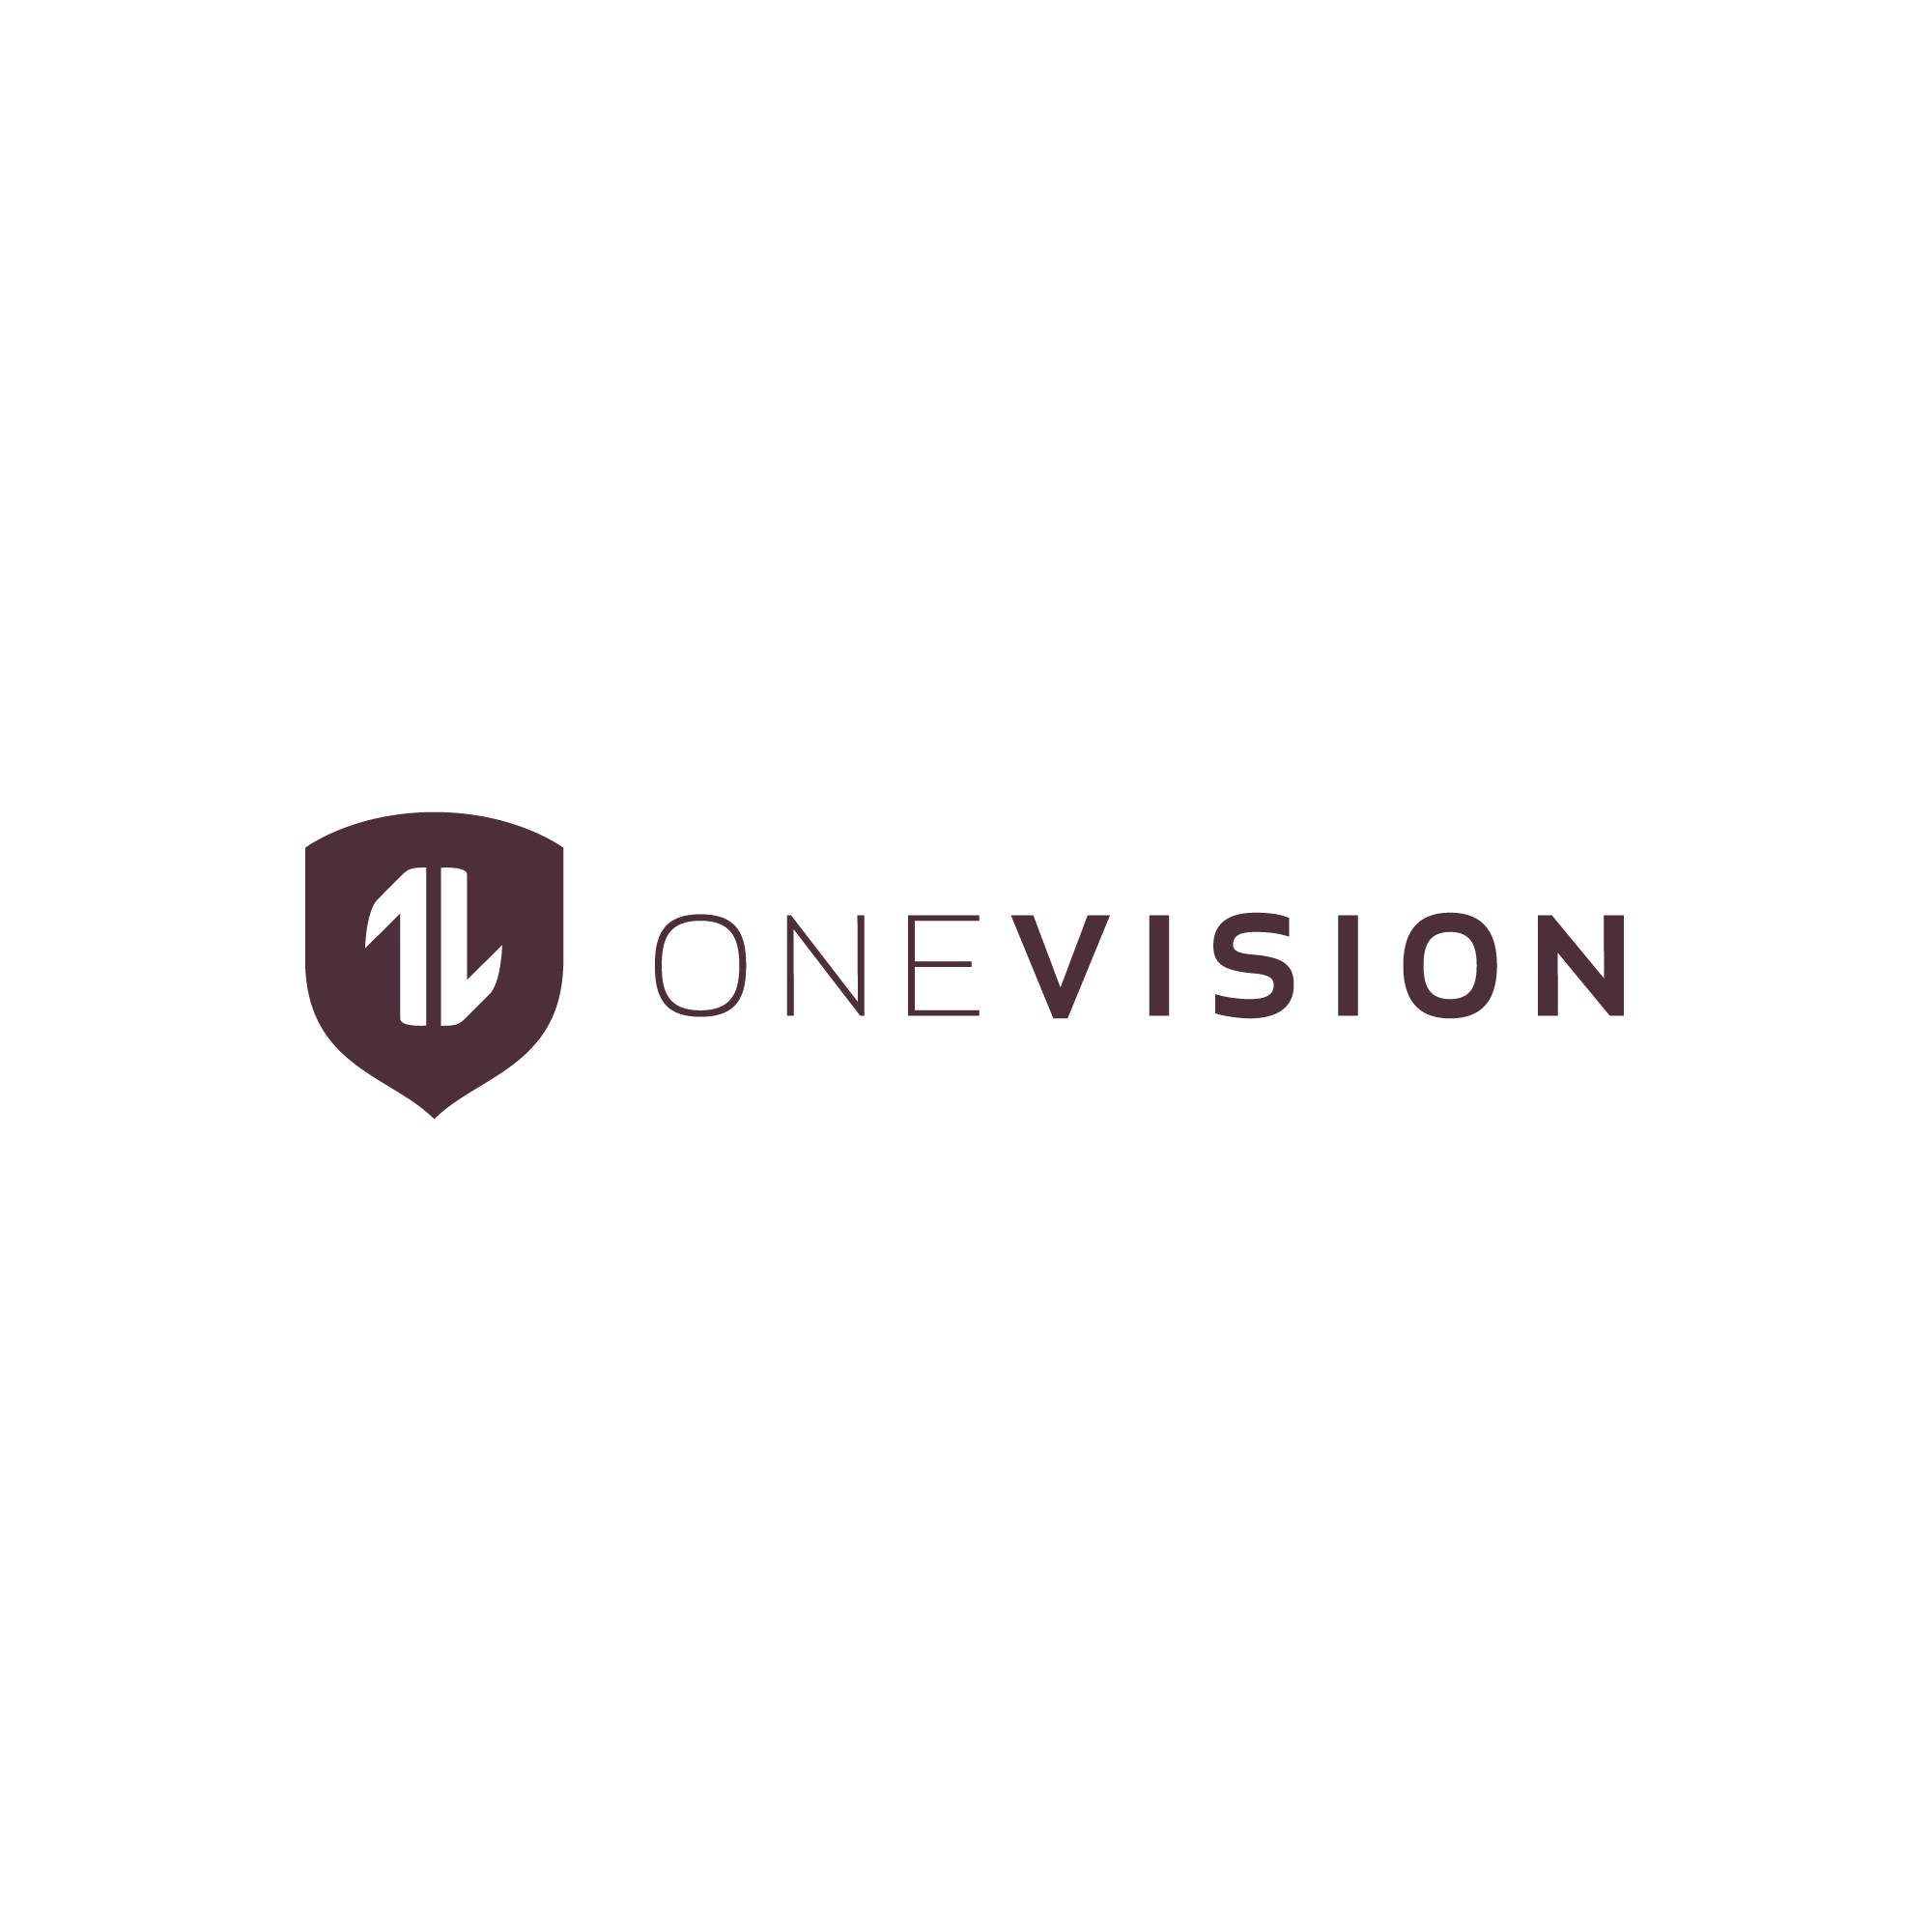 onevision_1.png